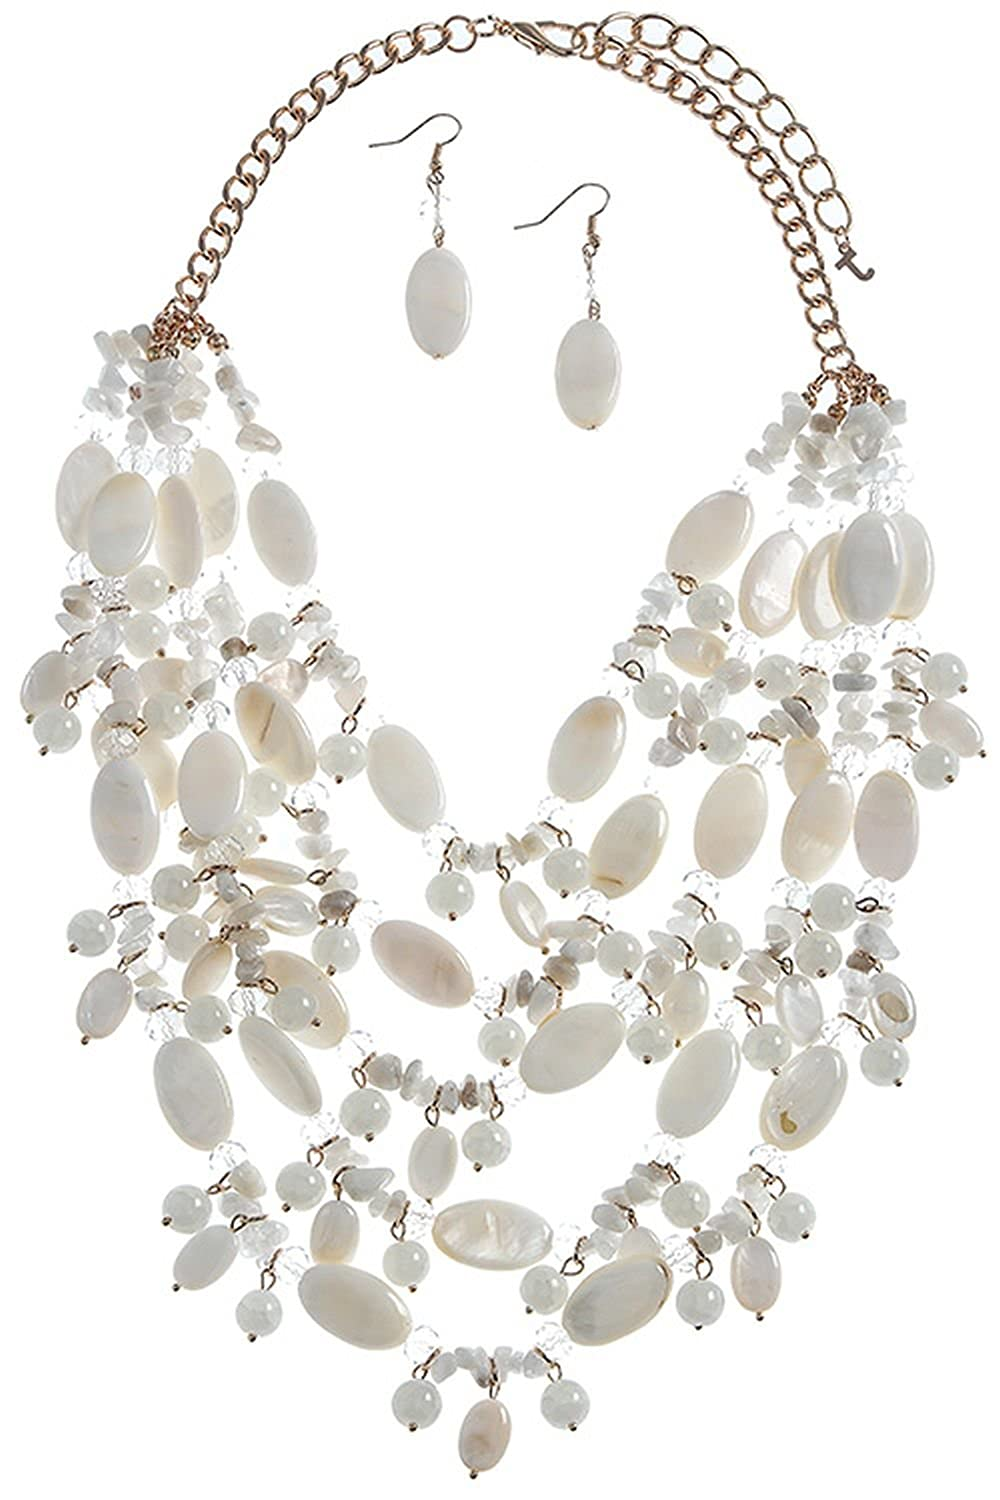 KARMAS CANVAS MIXED BEAD SHELL ACCENT NECKLACE SET